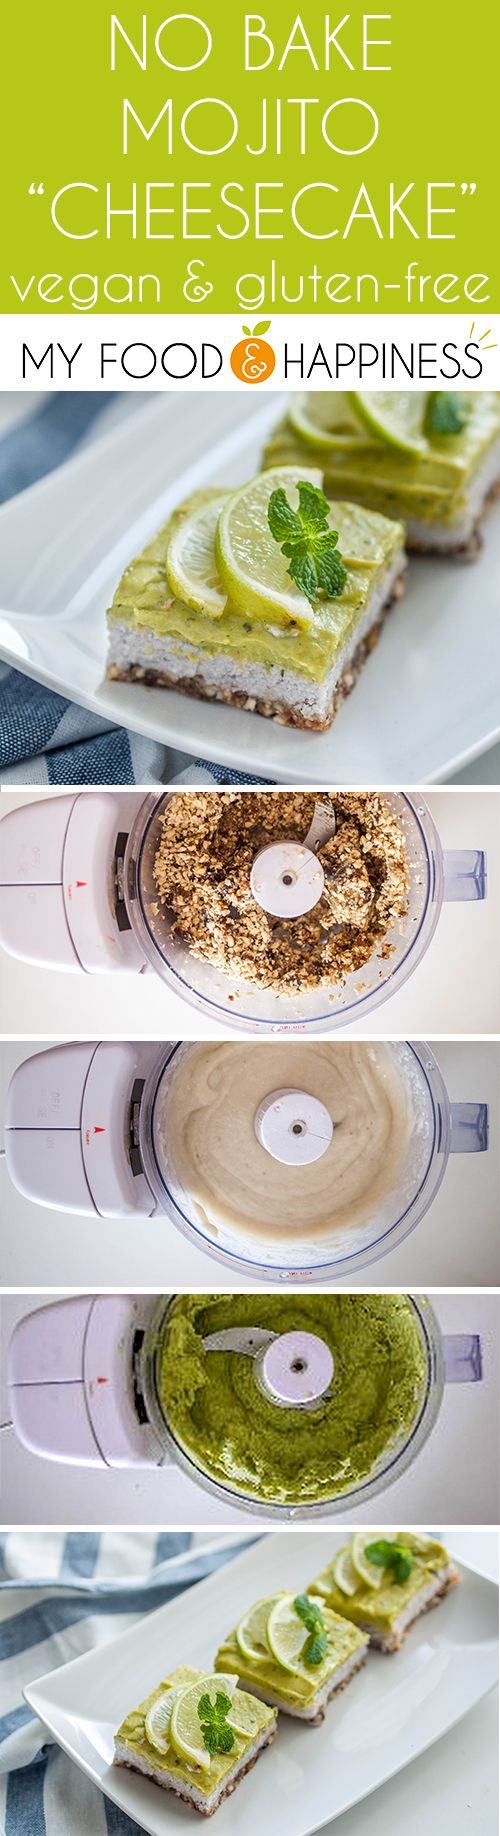 No bake Vegan & Gluten-free Mojito Cheesecake! Delicious guilt-free vegan cheesecake with nutritious ingredients that remind of the taste of the classic cocktail! No nut pre-soaking is required, this cheesecake requires less than 30 minutes prep work!